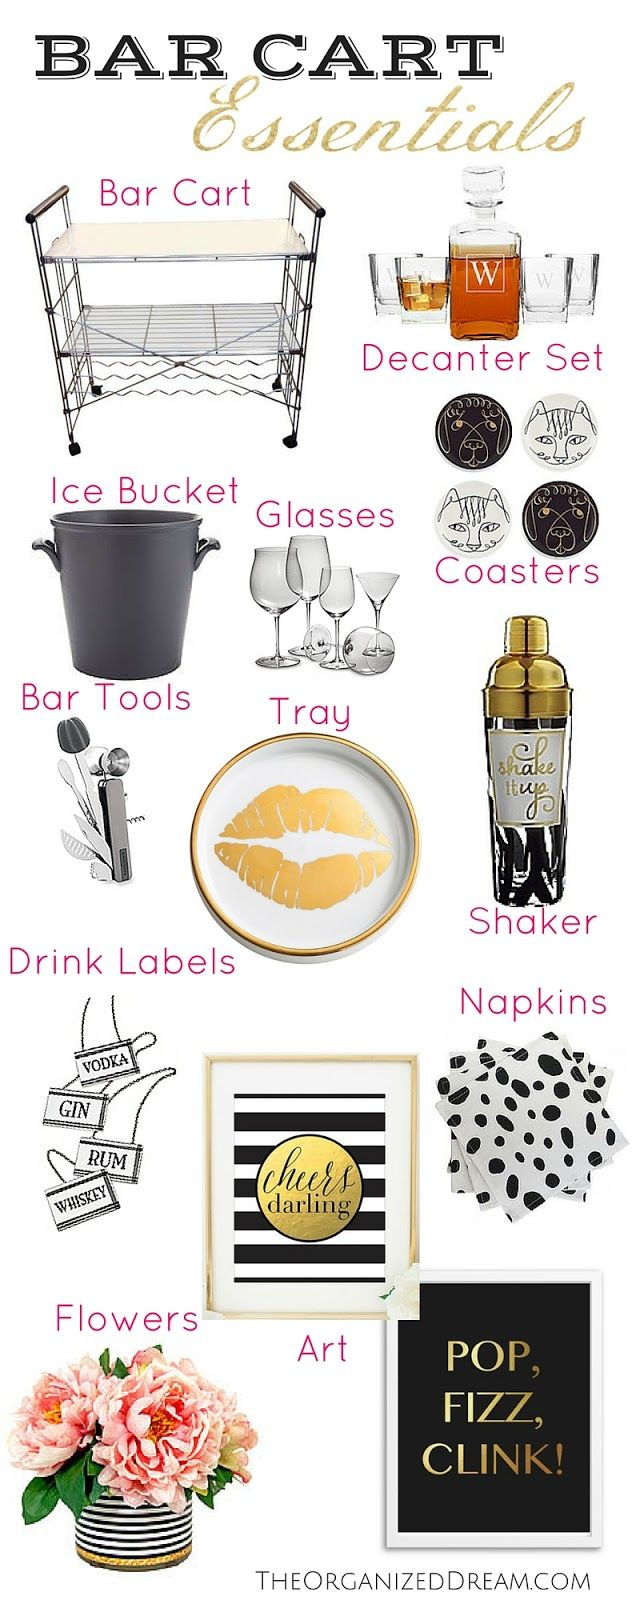 The Organized Dream: Bar Cart Essentials